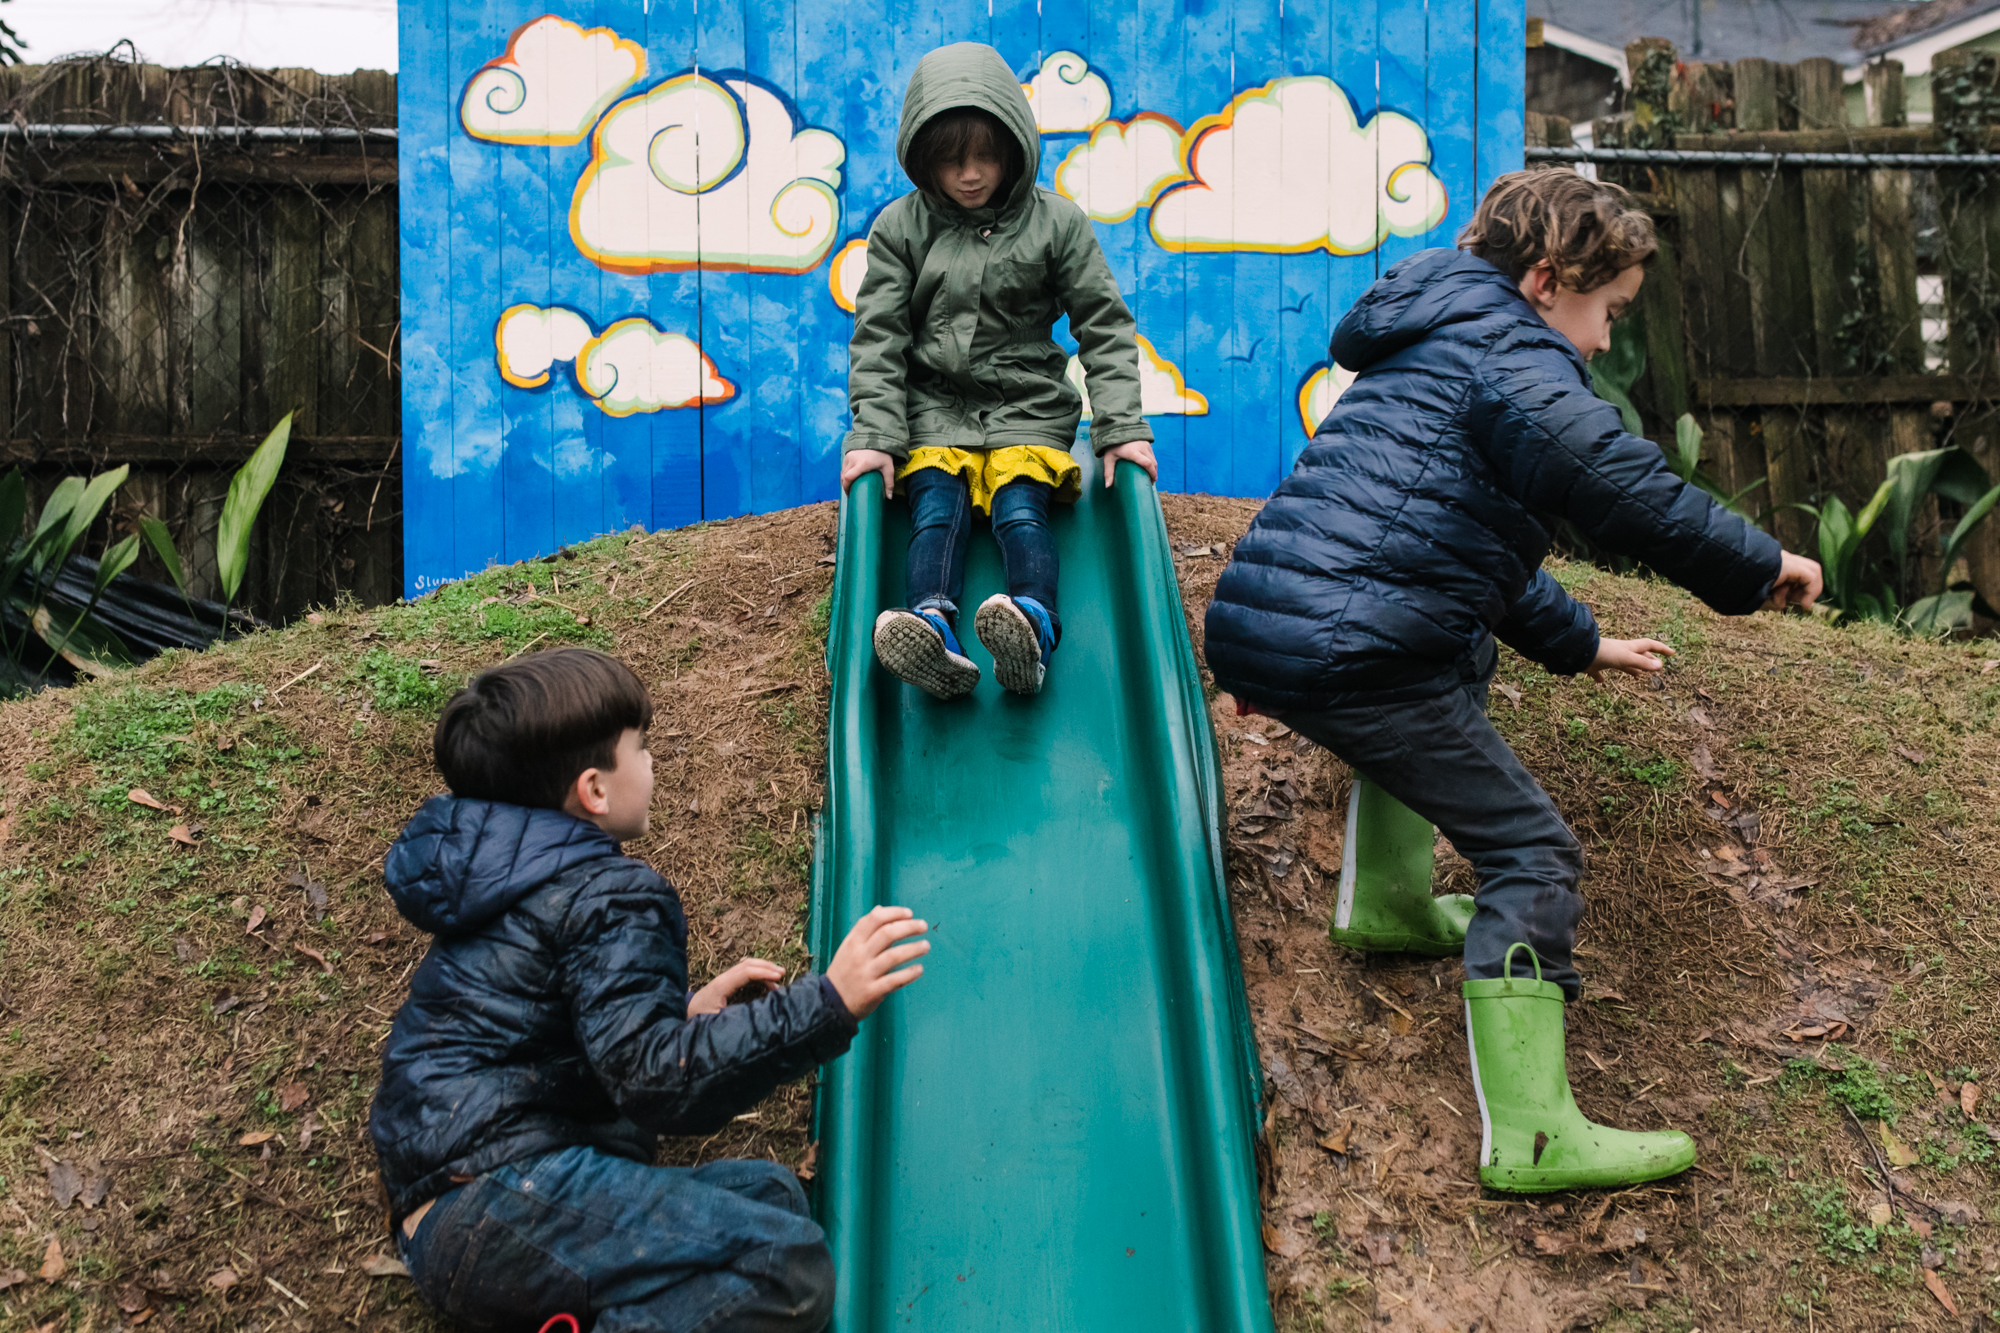 A girl slides down a slide as two boys jump across the slide in front of her